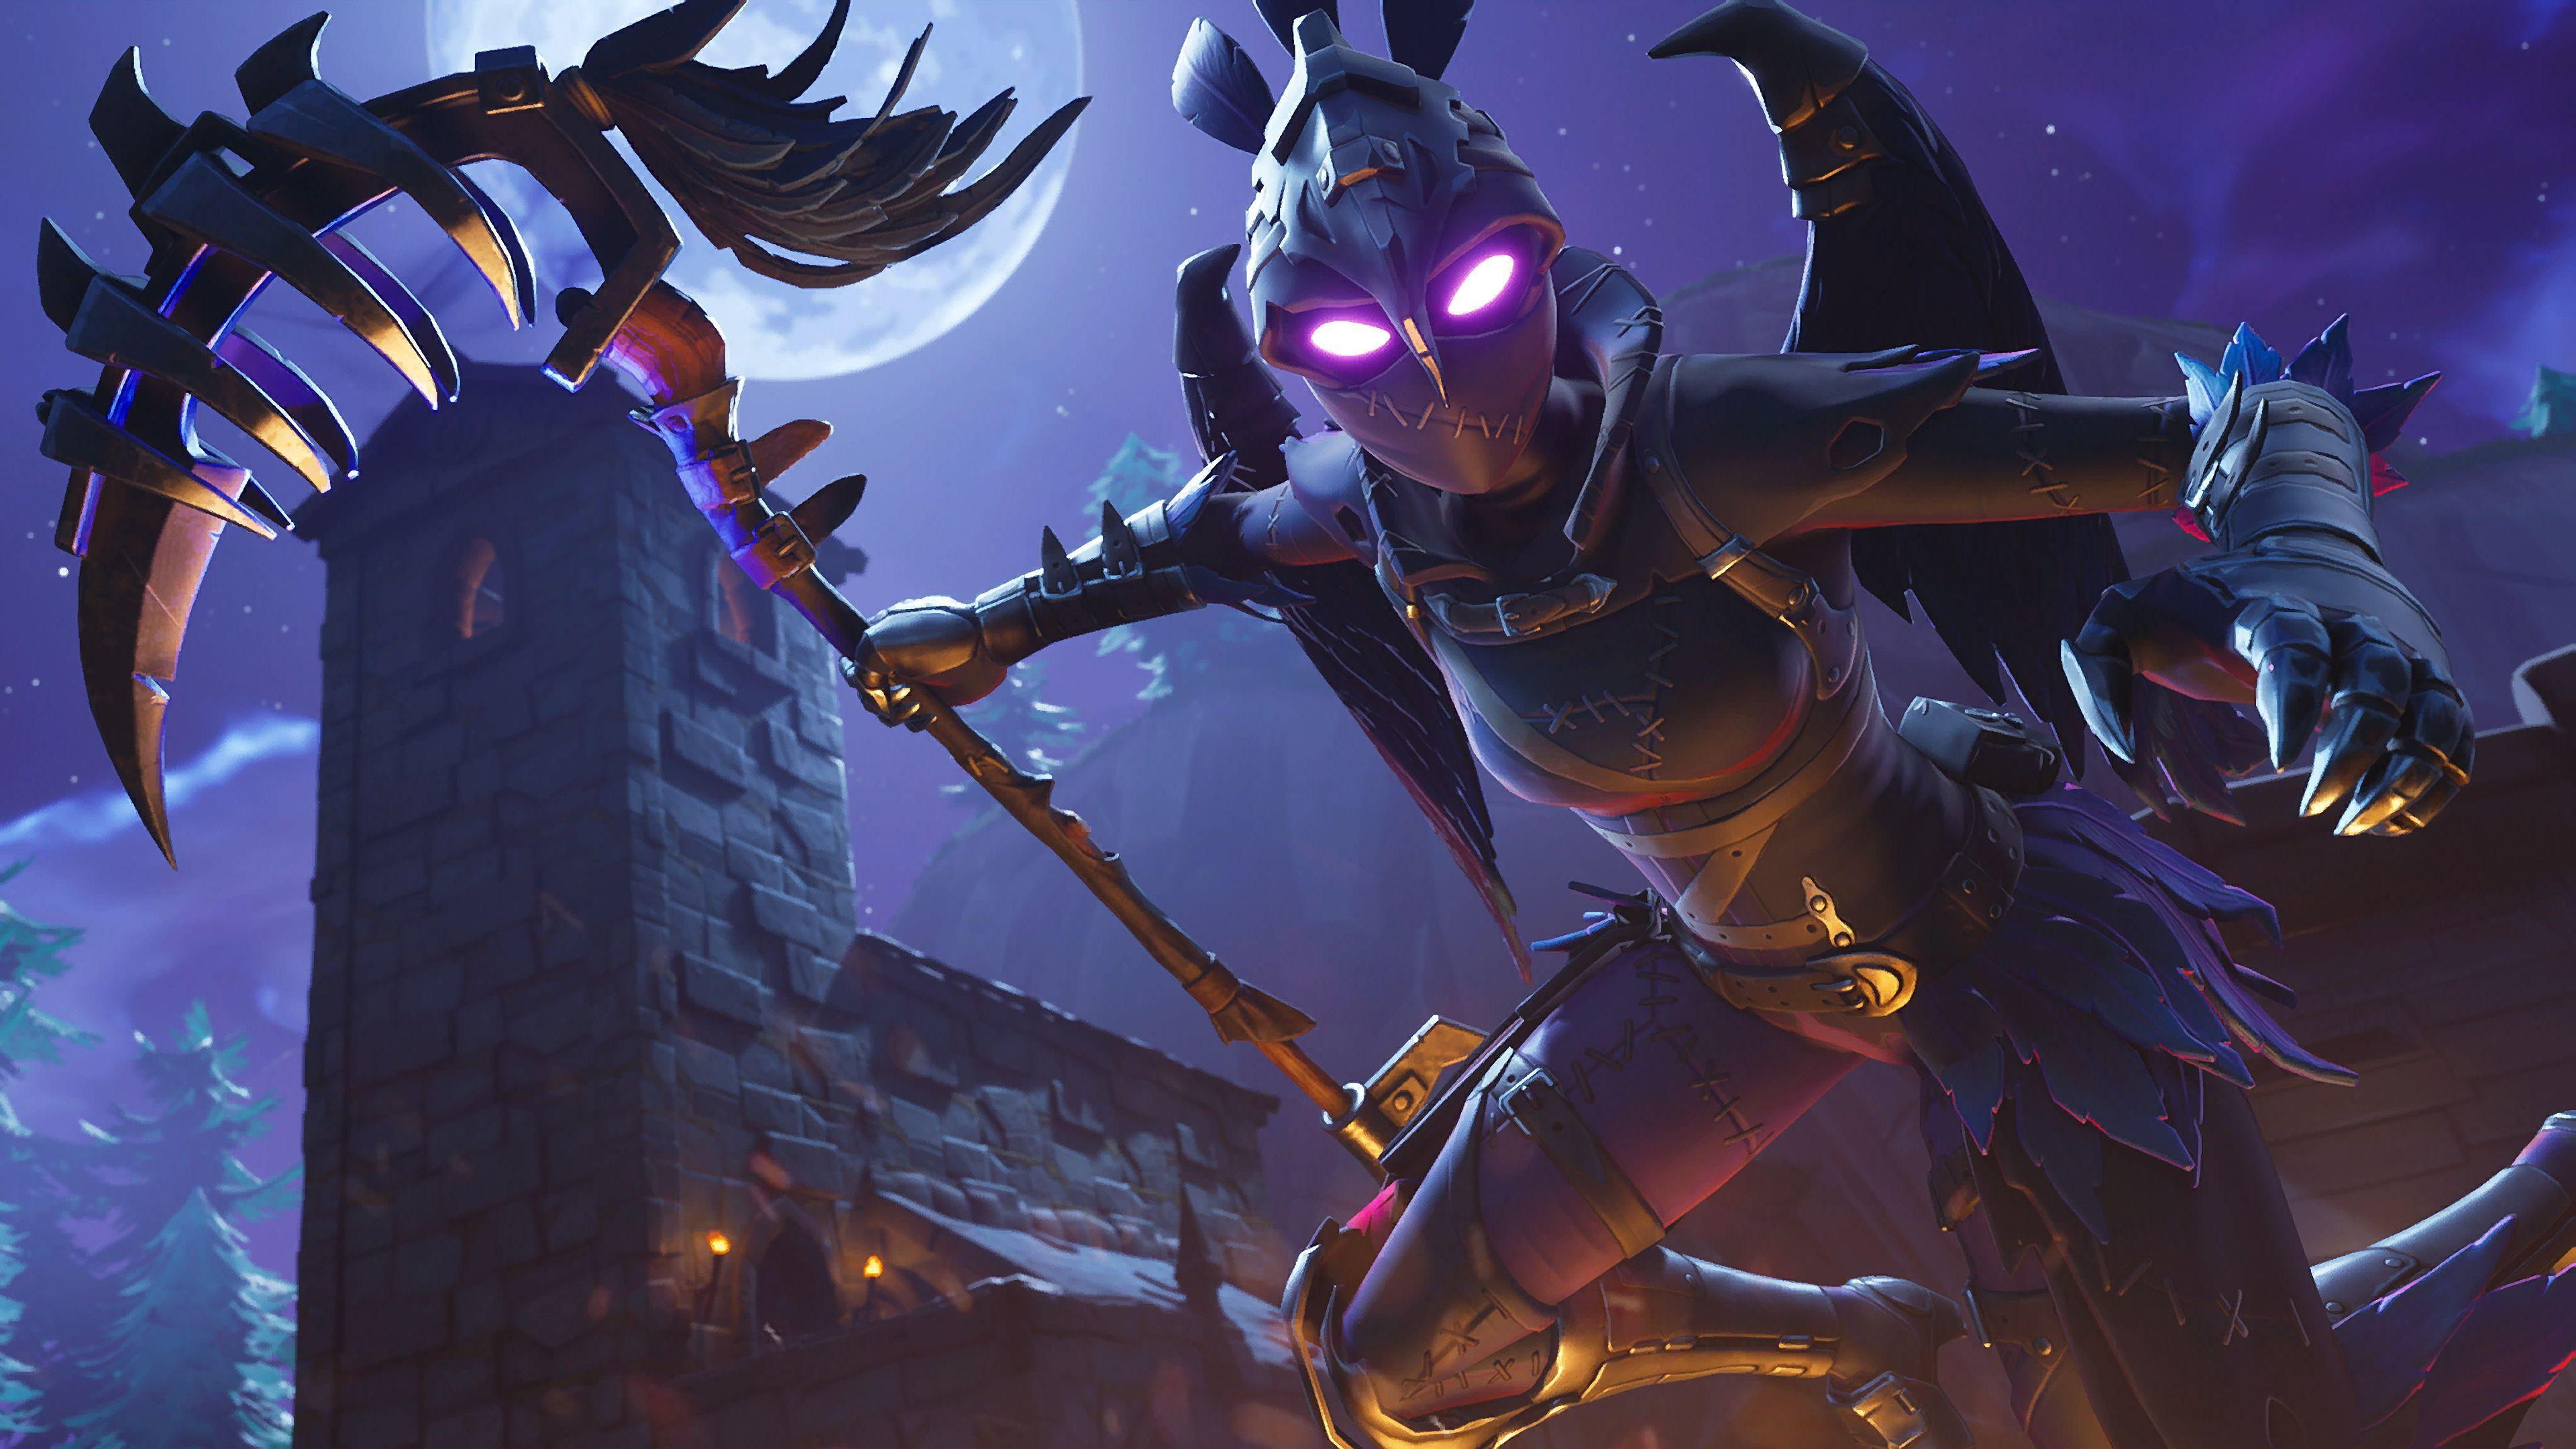 Wallpapers 4k Ravage Fortnite Battle Royale Season 6 4k 2018 games